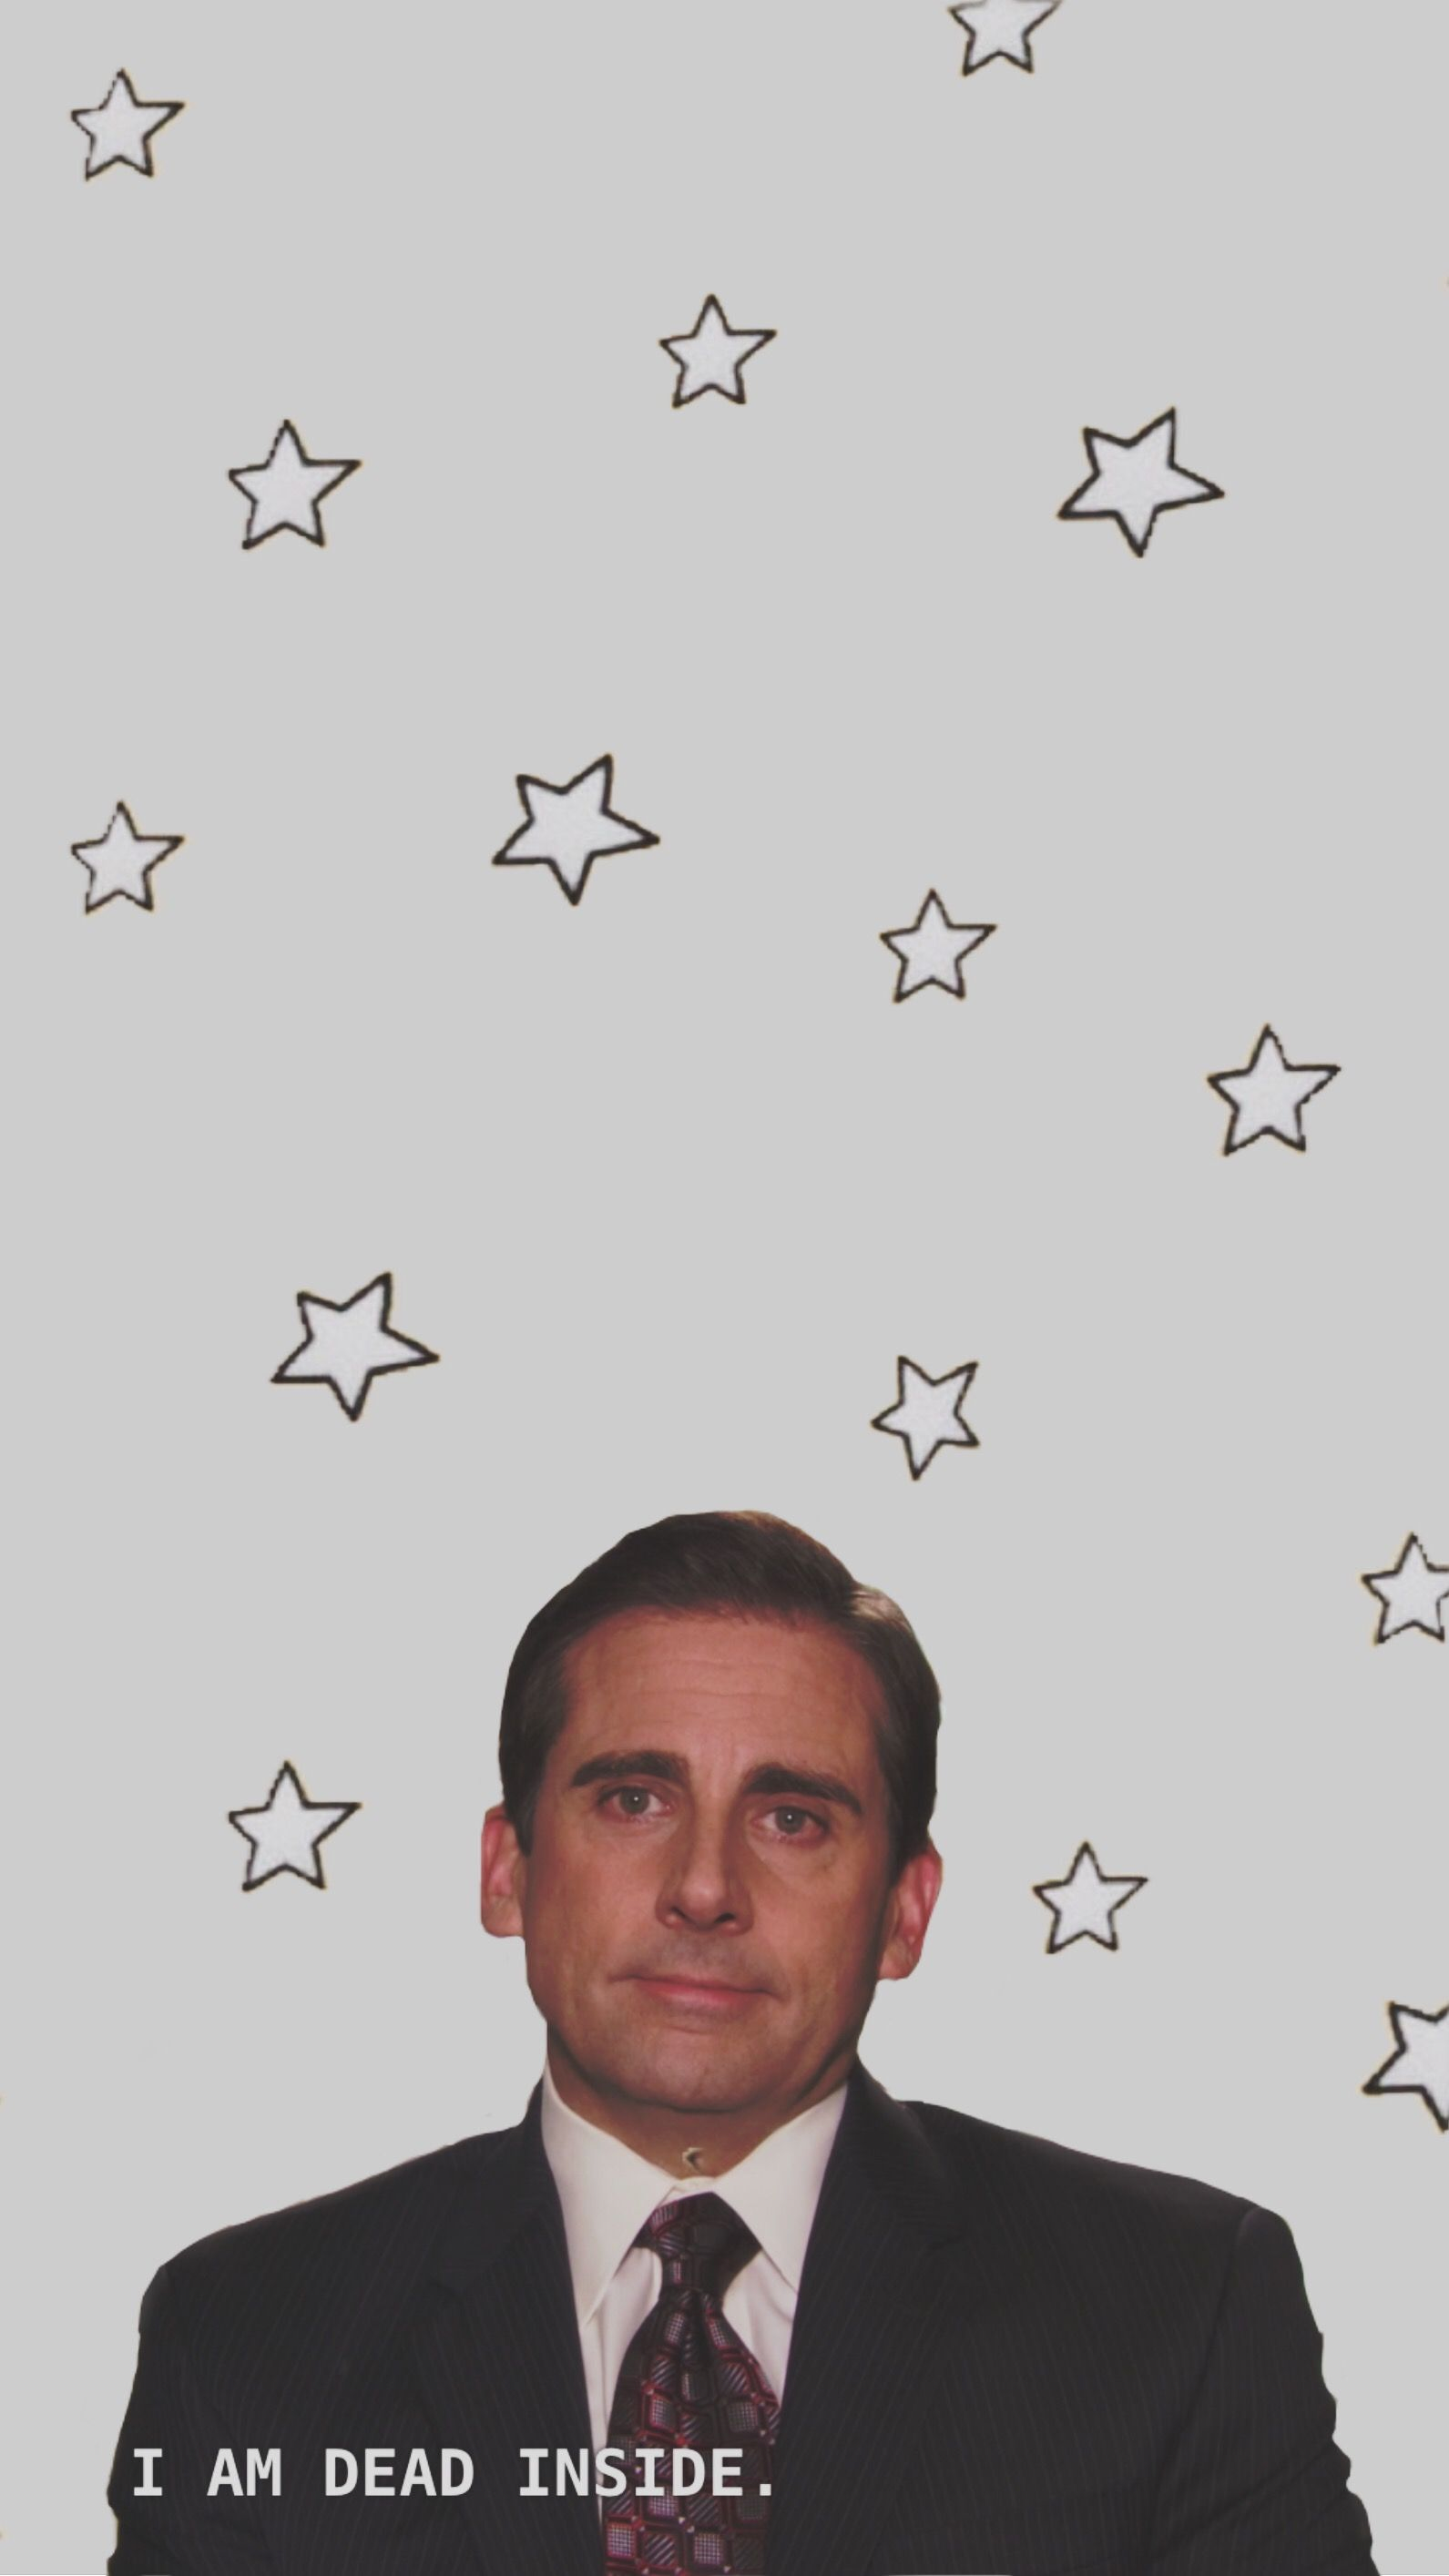 The Office Wallpaper Funny : office, wallpaper, funny, @𝚔𝚊𝚝𝚑𝚢𝚎𝚍𝚒𝚝𝚜, Office, Wallpaper,, Iconic, Funny, Phone, Wallpaper